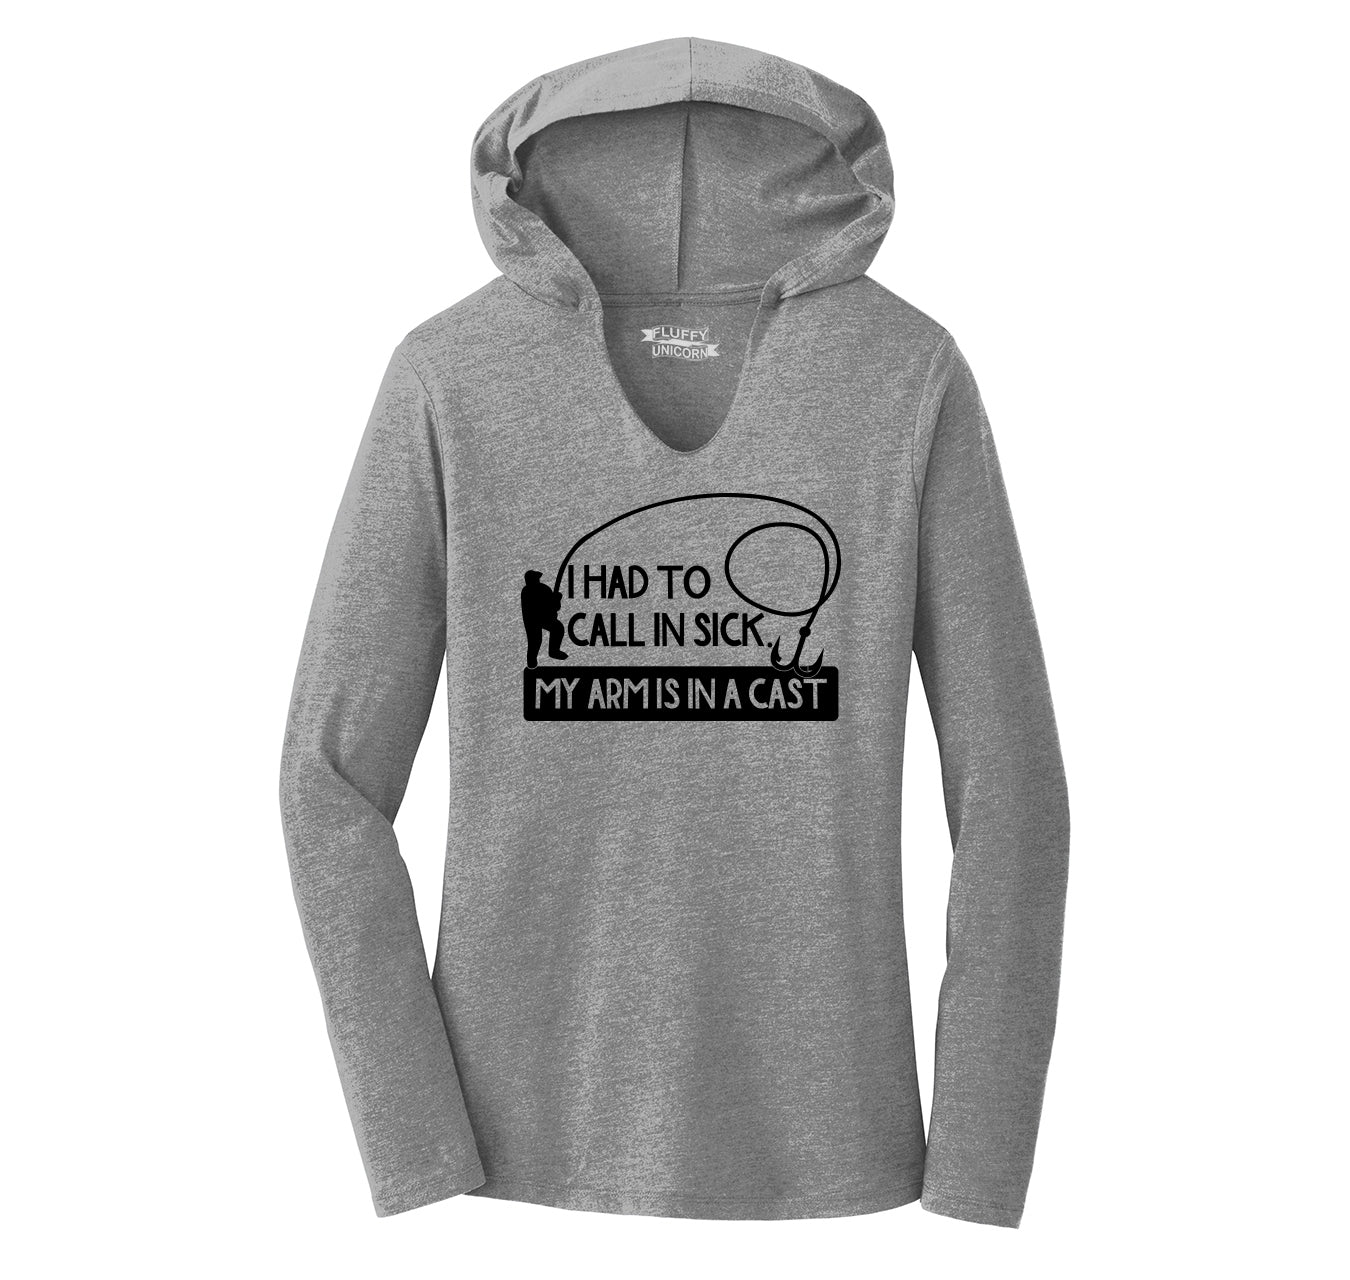 7cb5e726 Had To Call In Sick My Arm In A Cast Ladies Tri-Blend Hooded Tee ...